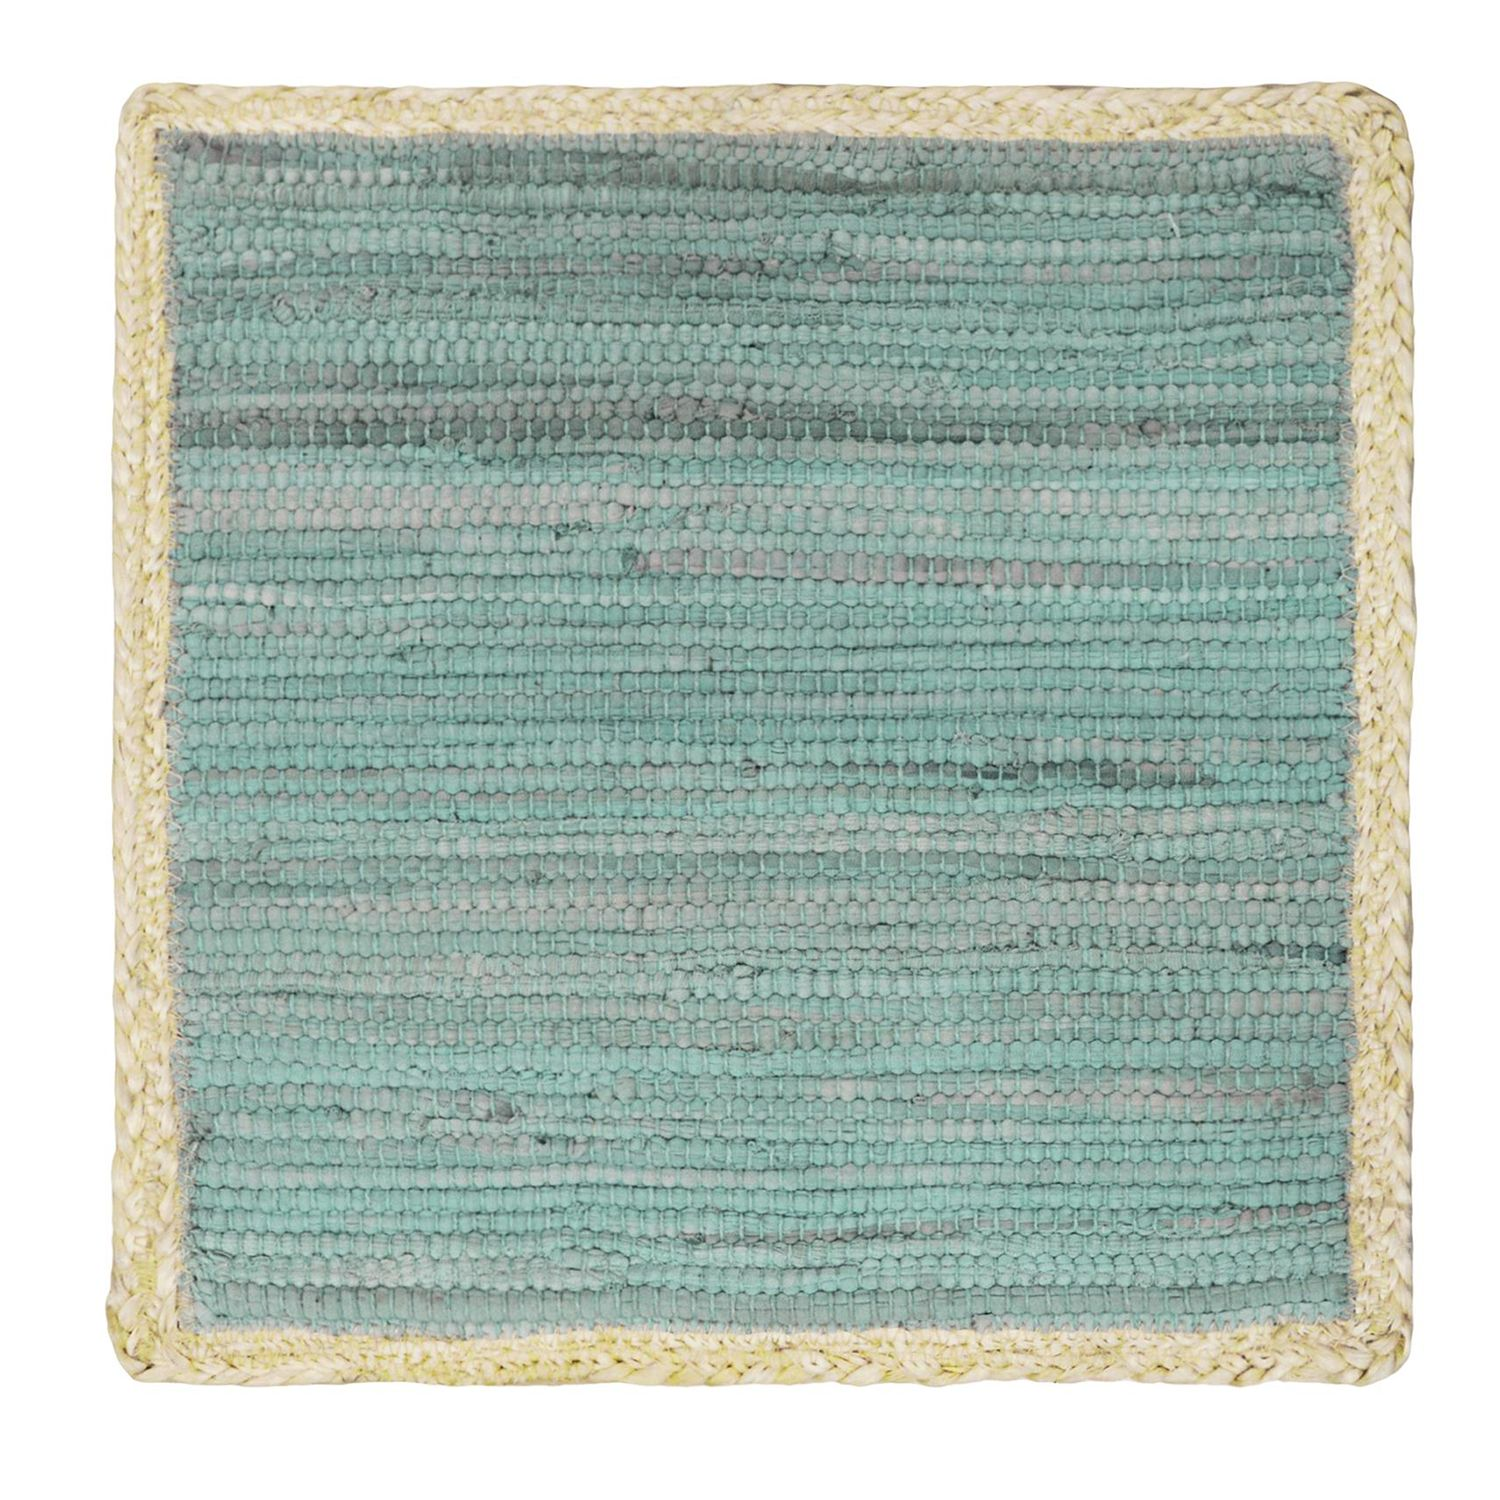 Charmant Food Network™ Jute Blue Chindi Square Placemat